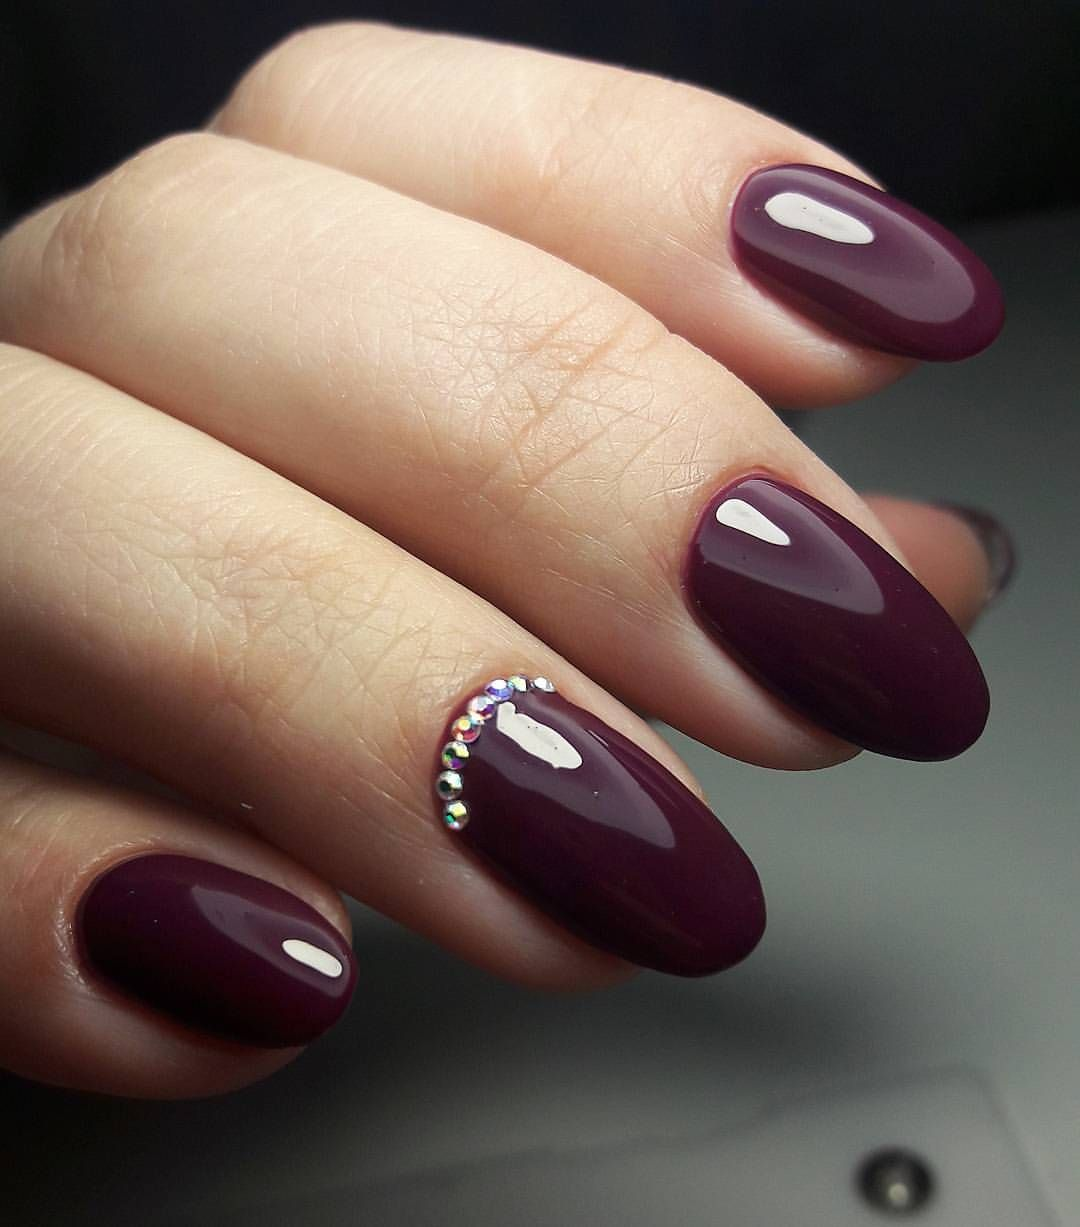 burgundy nails with little bling.change